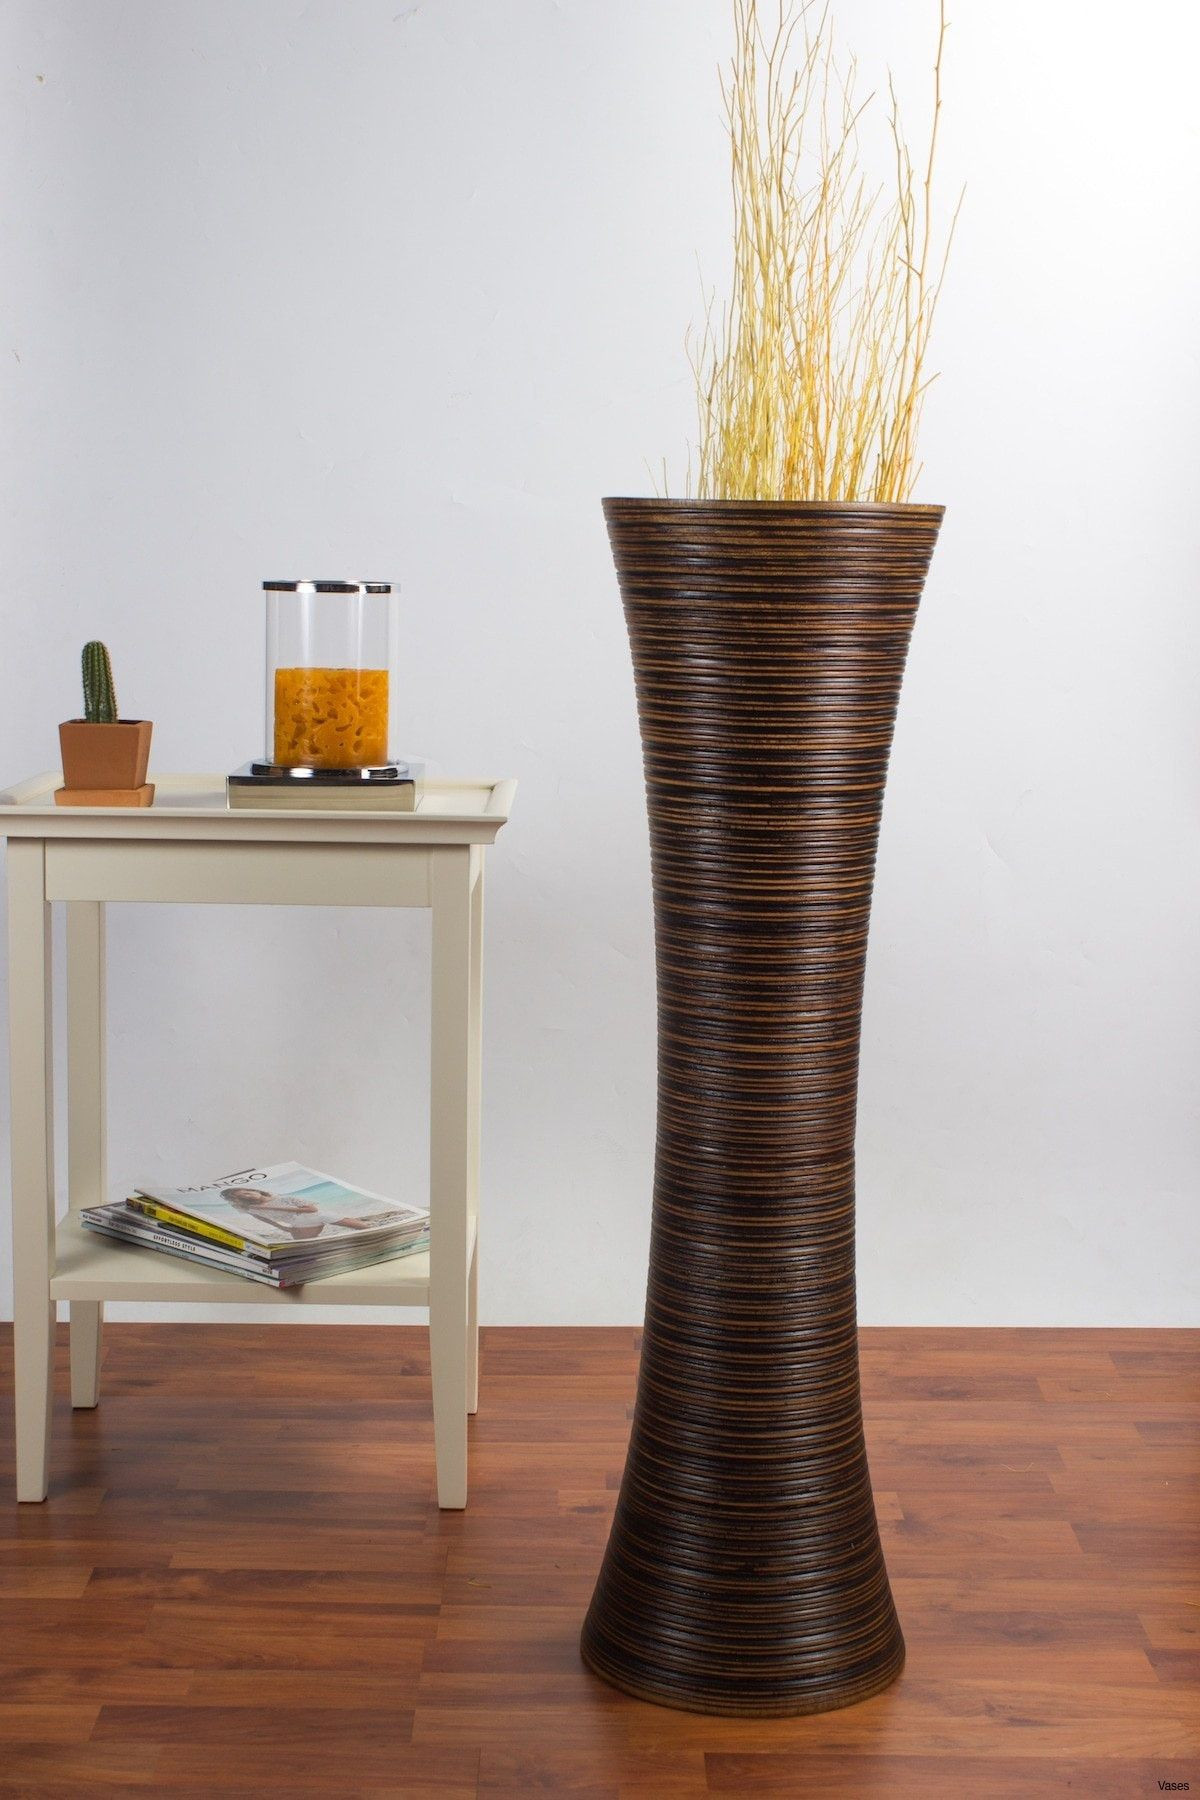 tall decorative floor vases of tall decorative vases luxury decorative floor vases fresh d dkbrw with regard to tall decorative vases luxury decorative floor vases fresh d dkbrw 5749 1h vases tall brown i